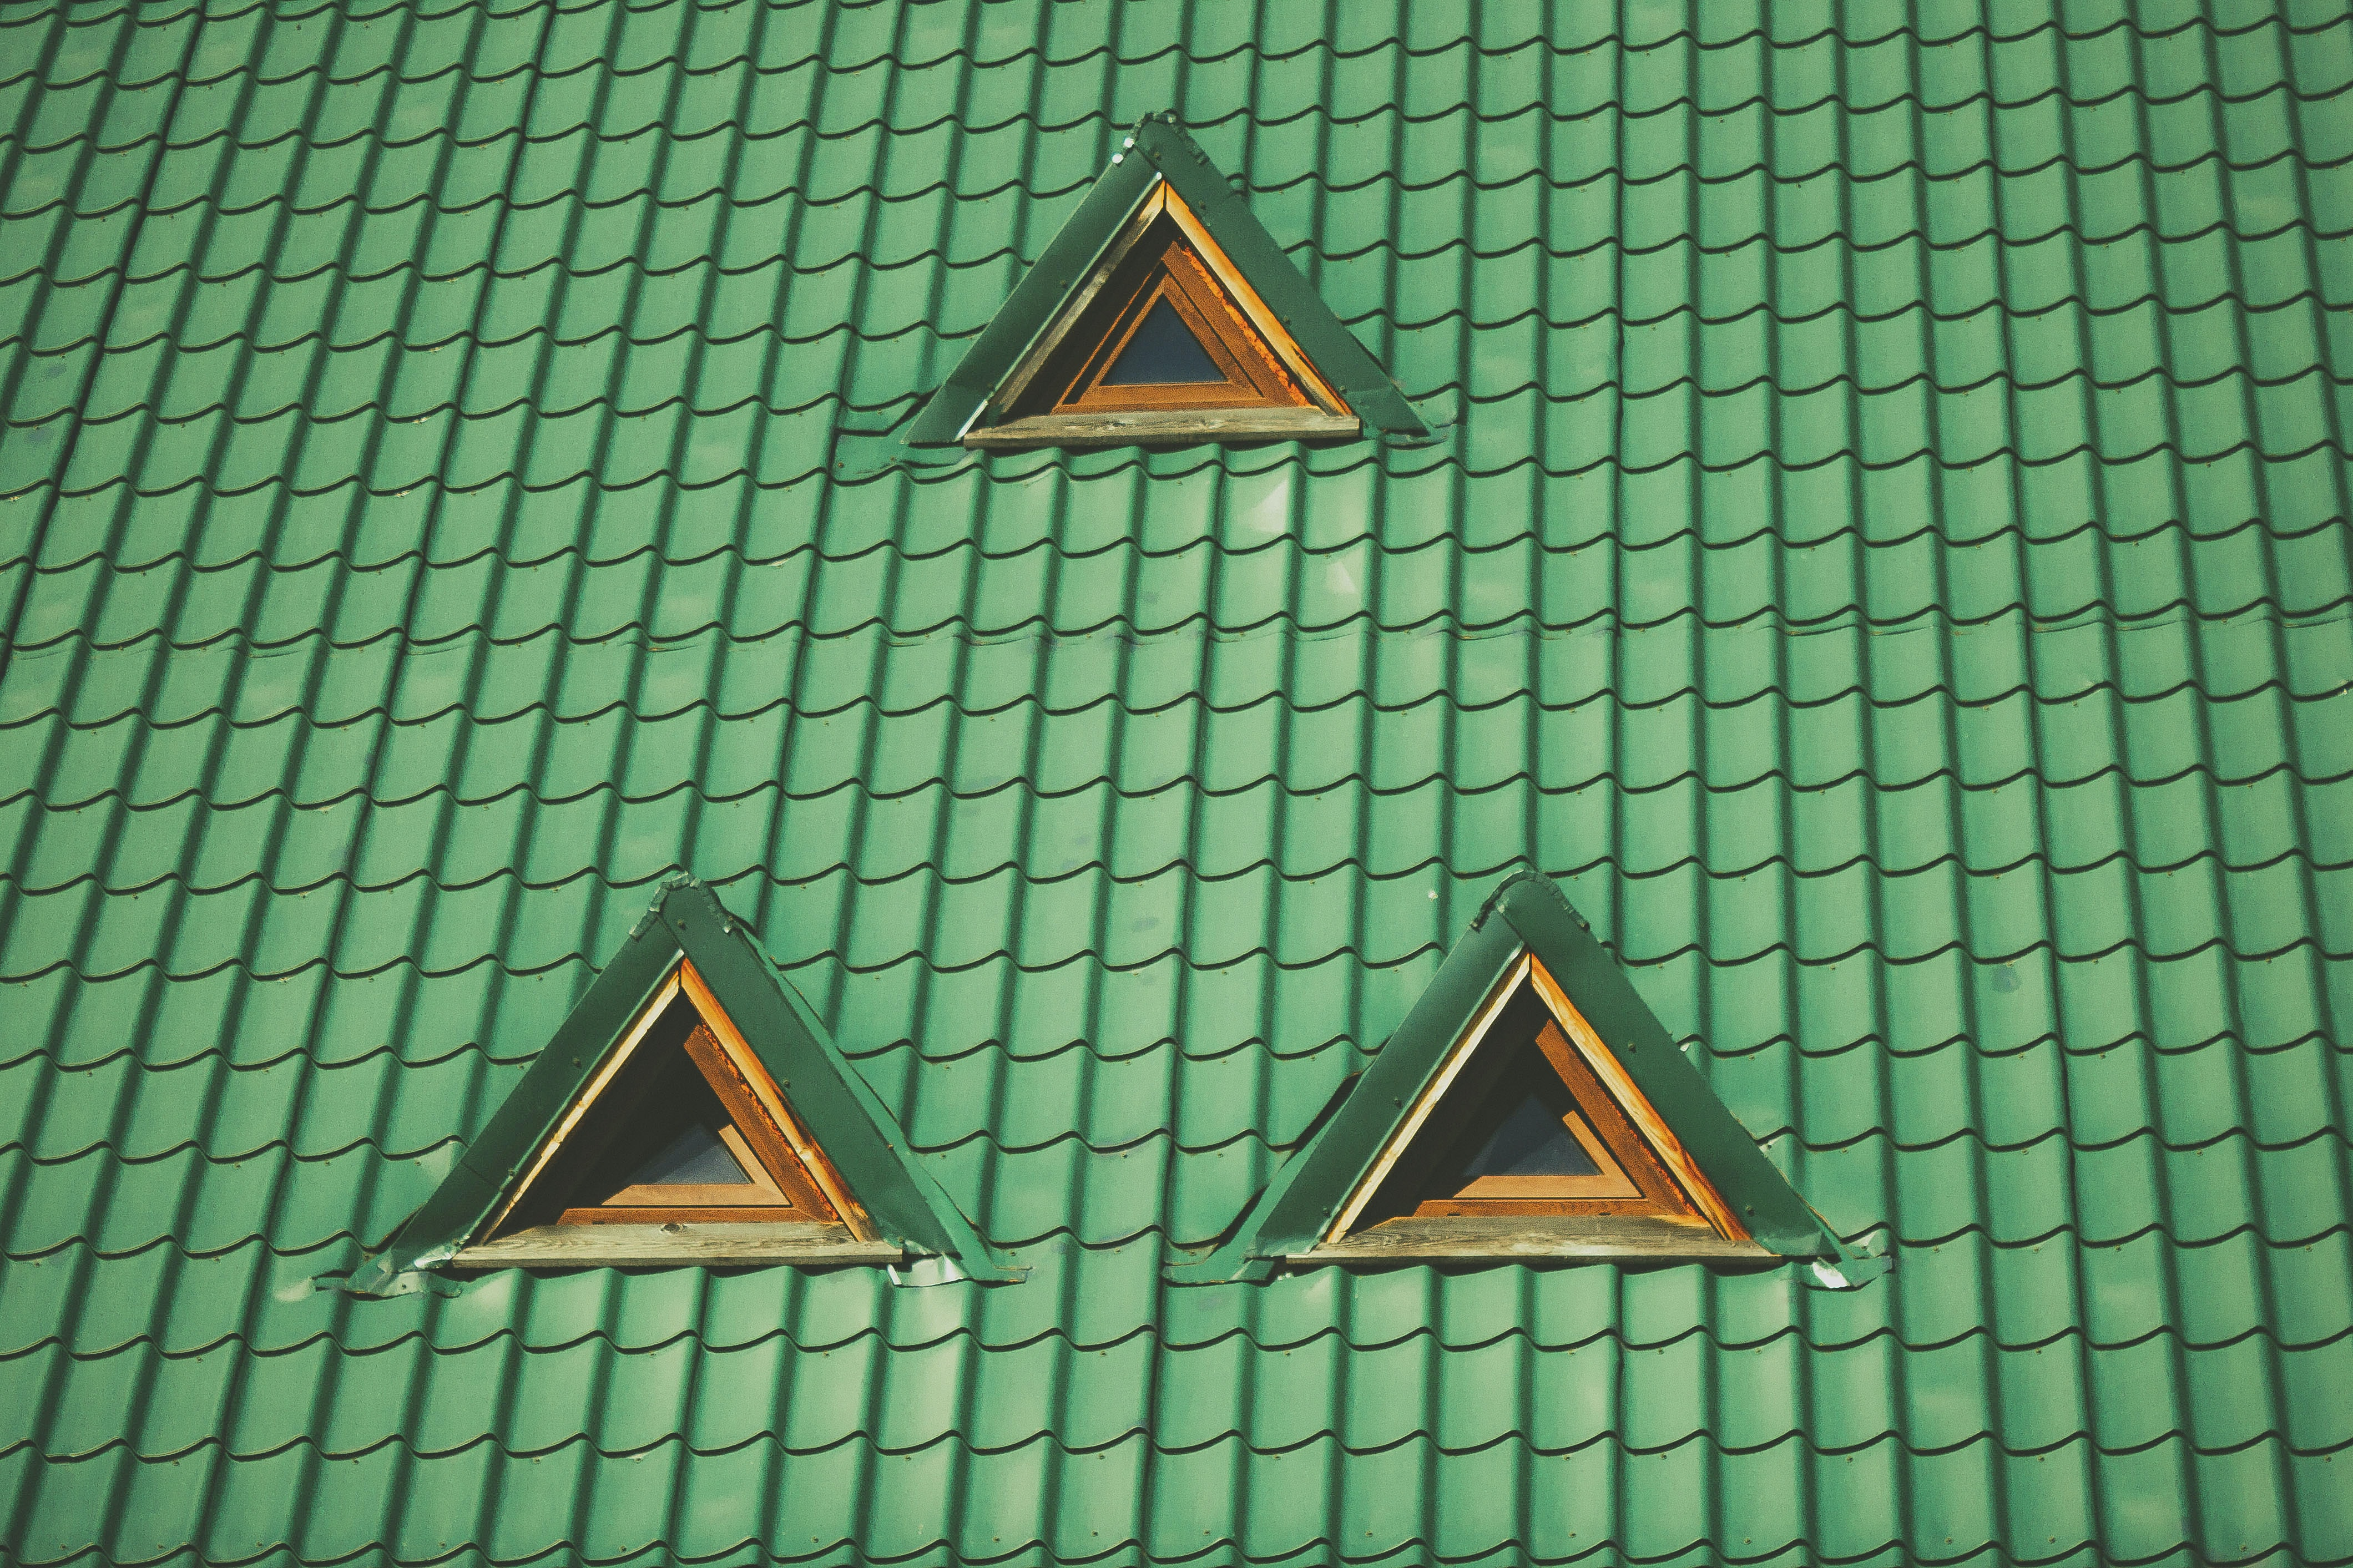 photo of green tiled roof